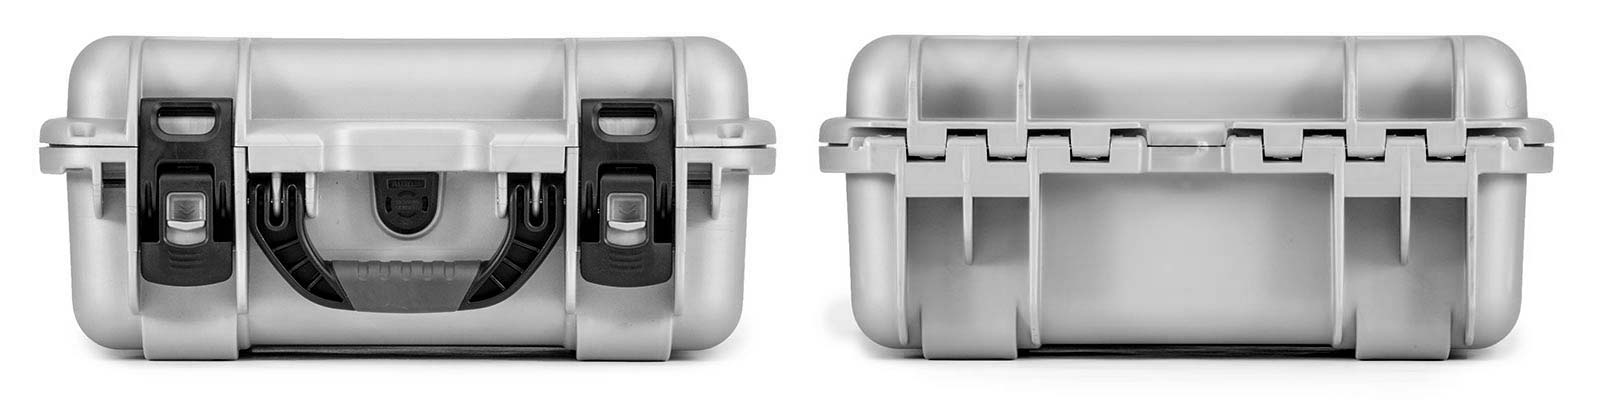 Nanuk 915 in Silver Front and Back Views